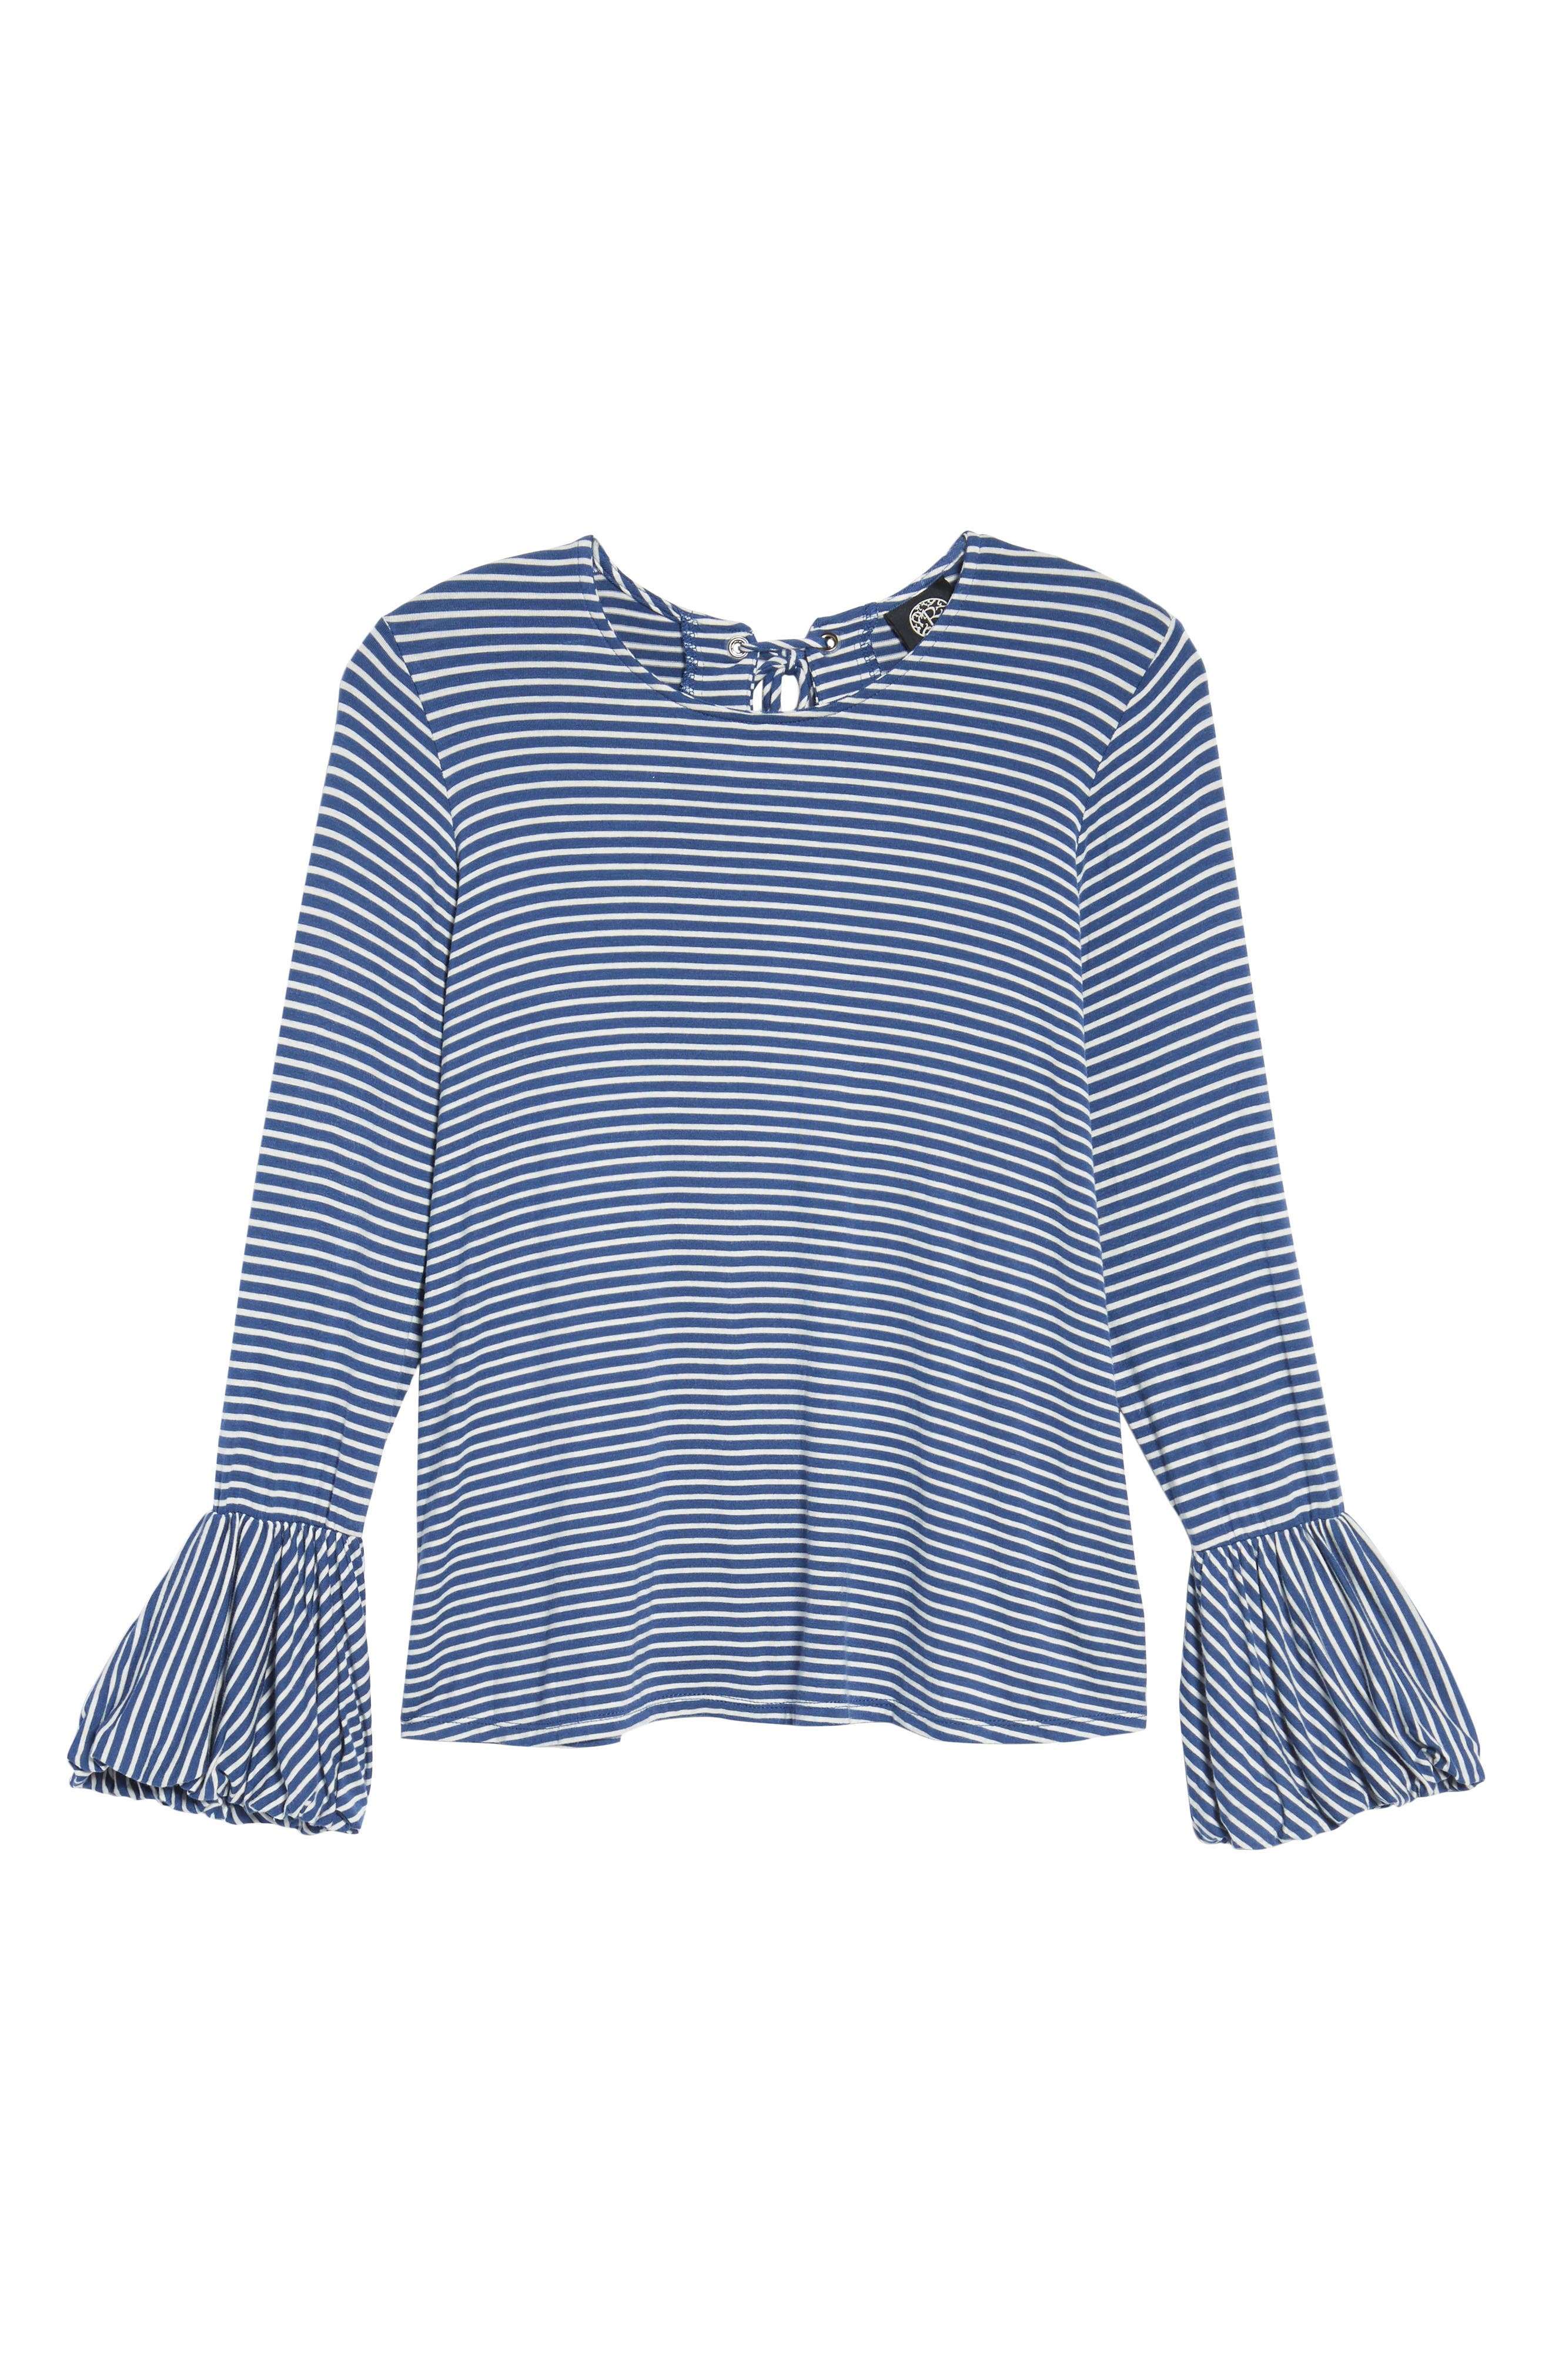 Bell Sleeve Top,                             Alternate thumbnail 27, color,